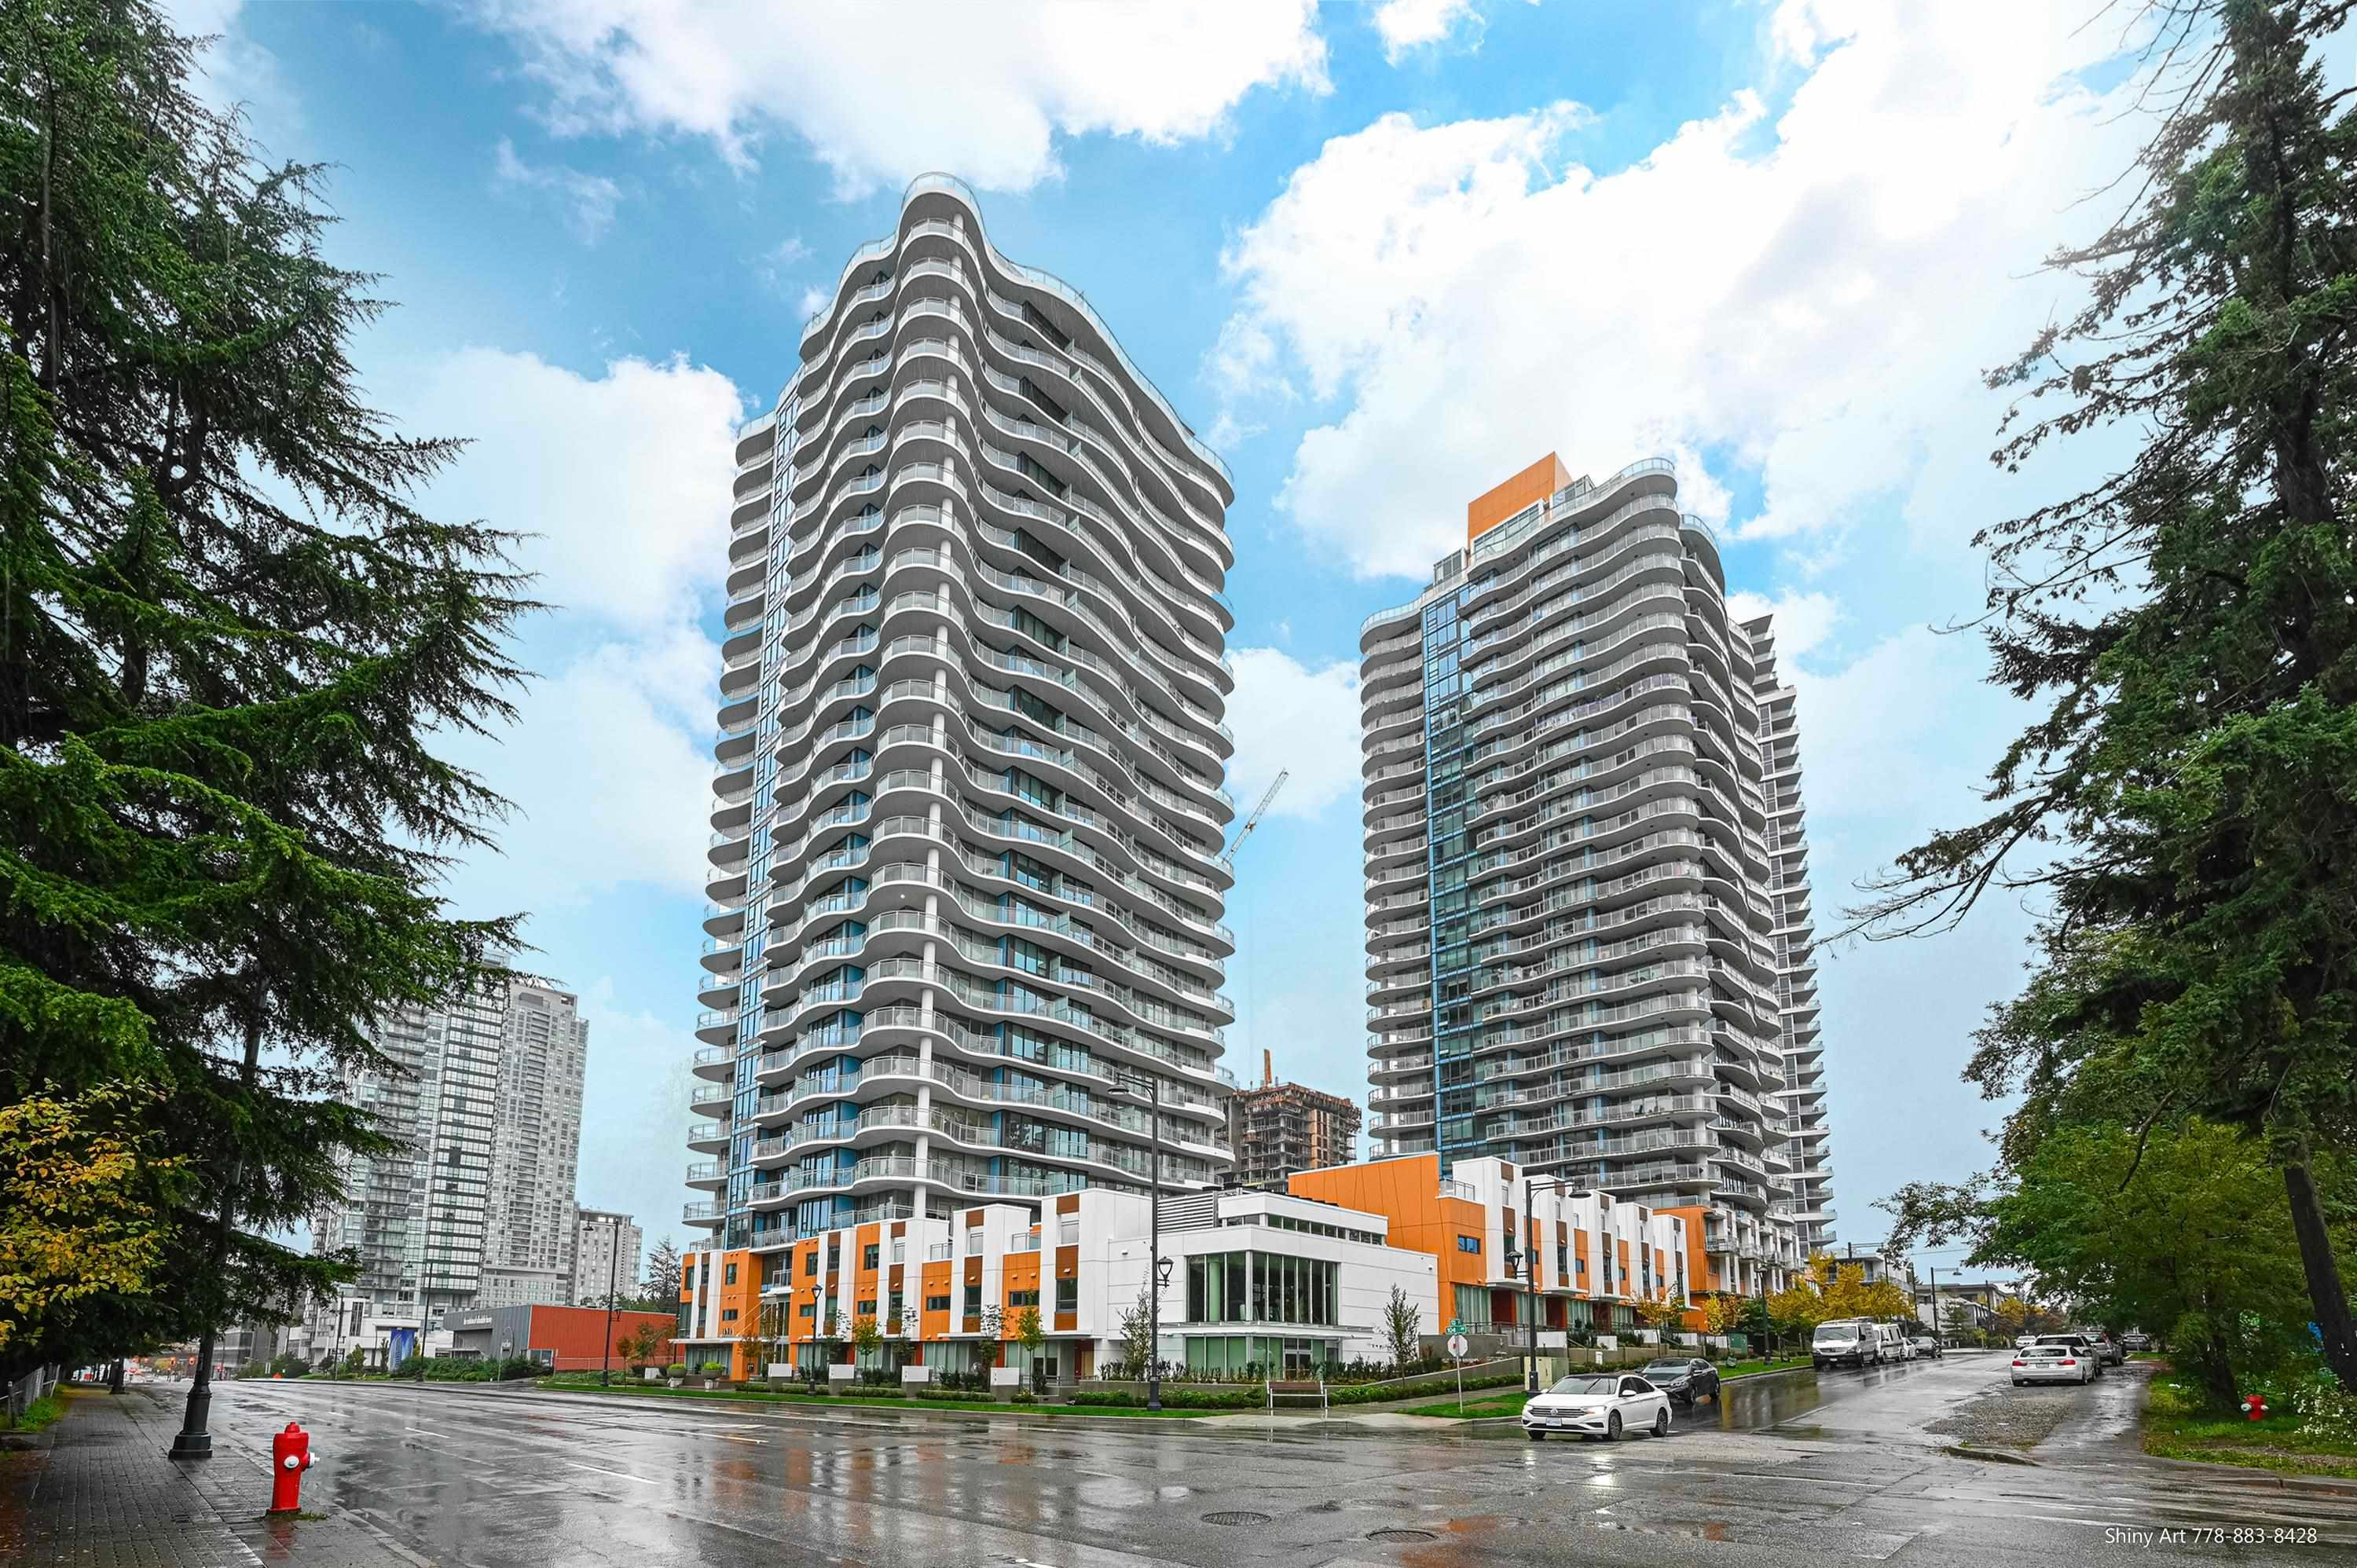 803 13318 104 AVENUE - Whalley Apartment/Condo for sale, 2 Bedrooms (R2625414)